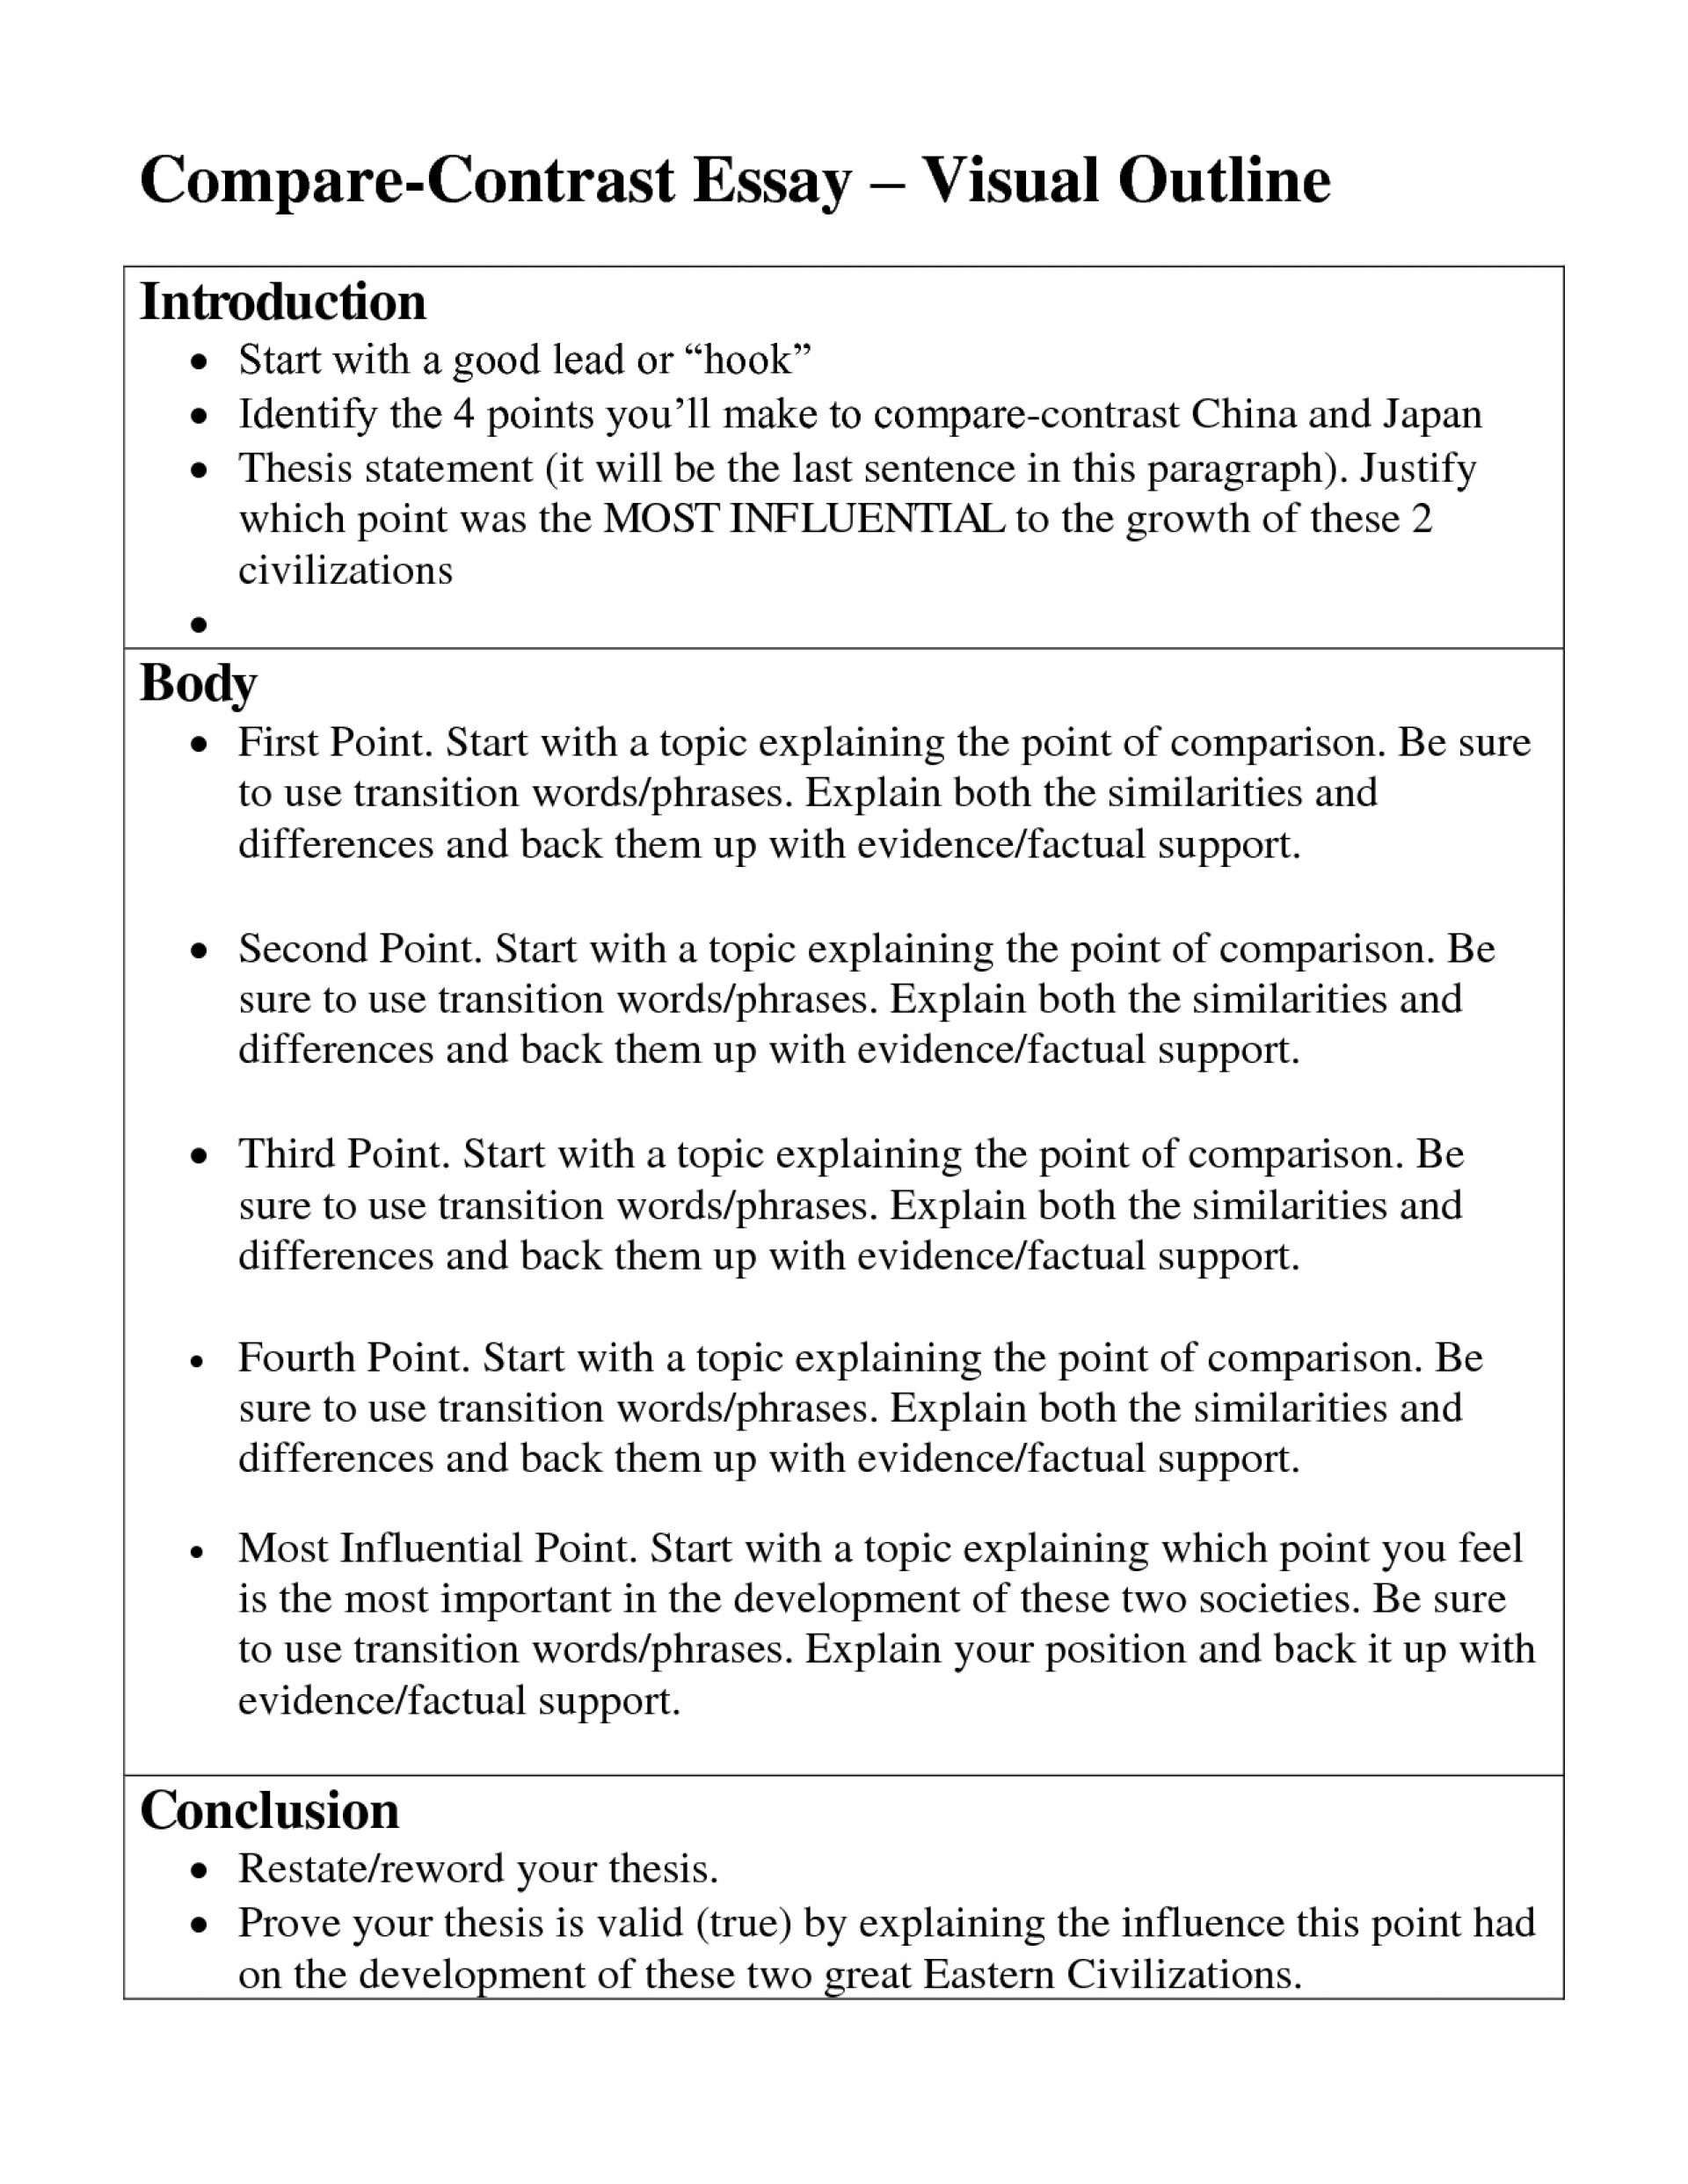 004 Compare Contrast Essay Outline Impressive And Worksheet Pdf Format 5 Paragraph Point By 1920